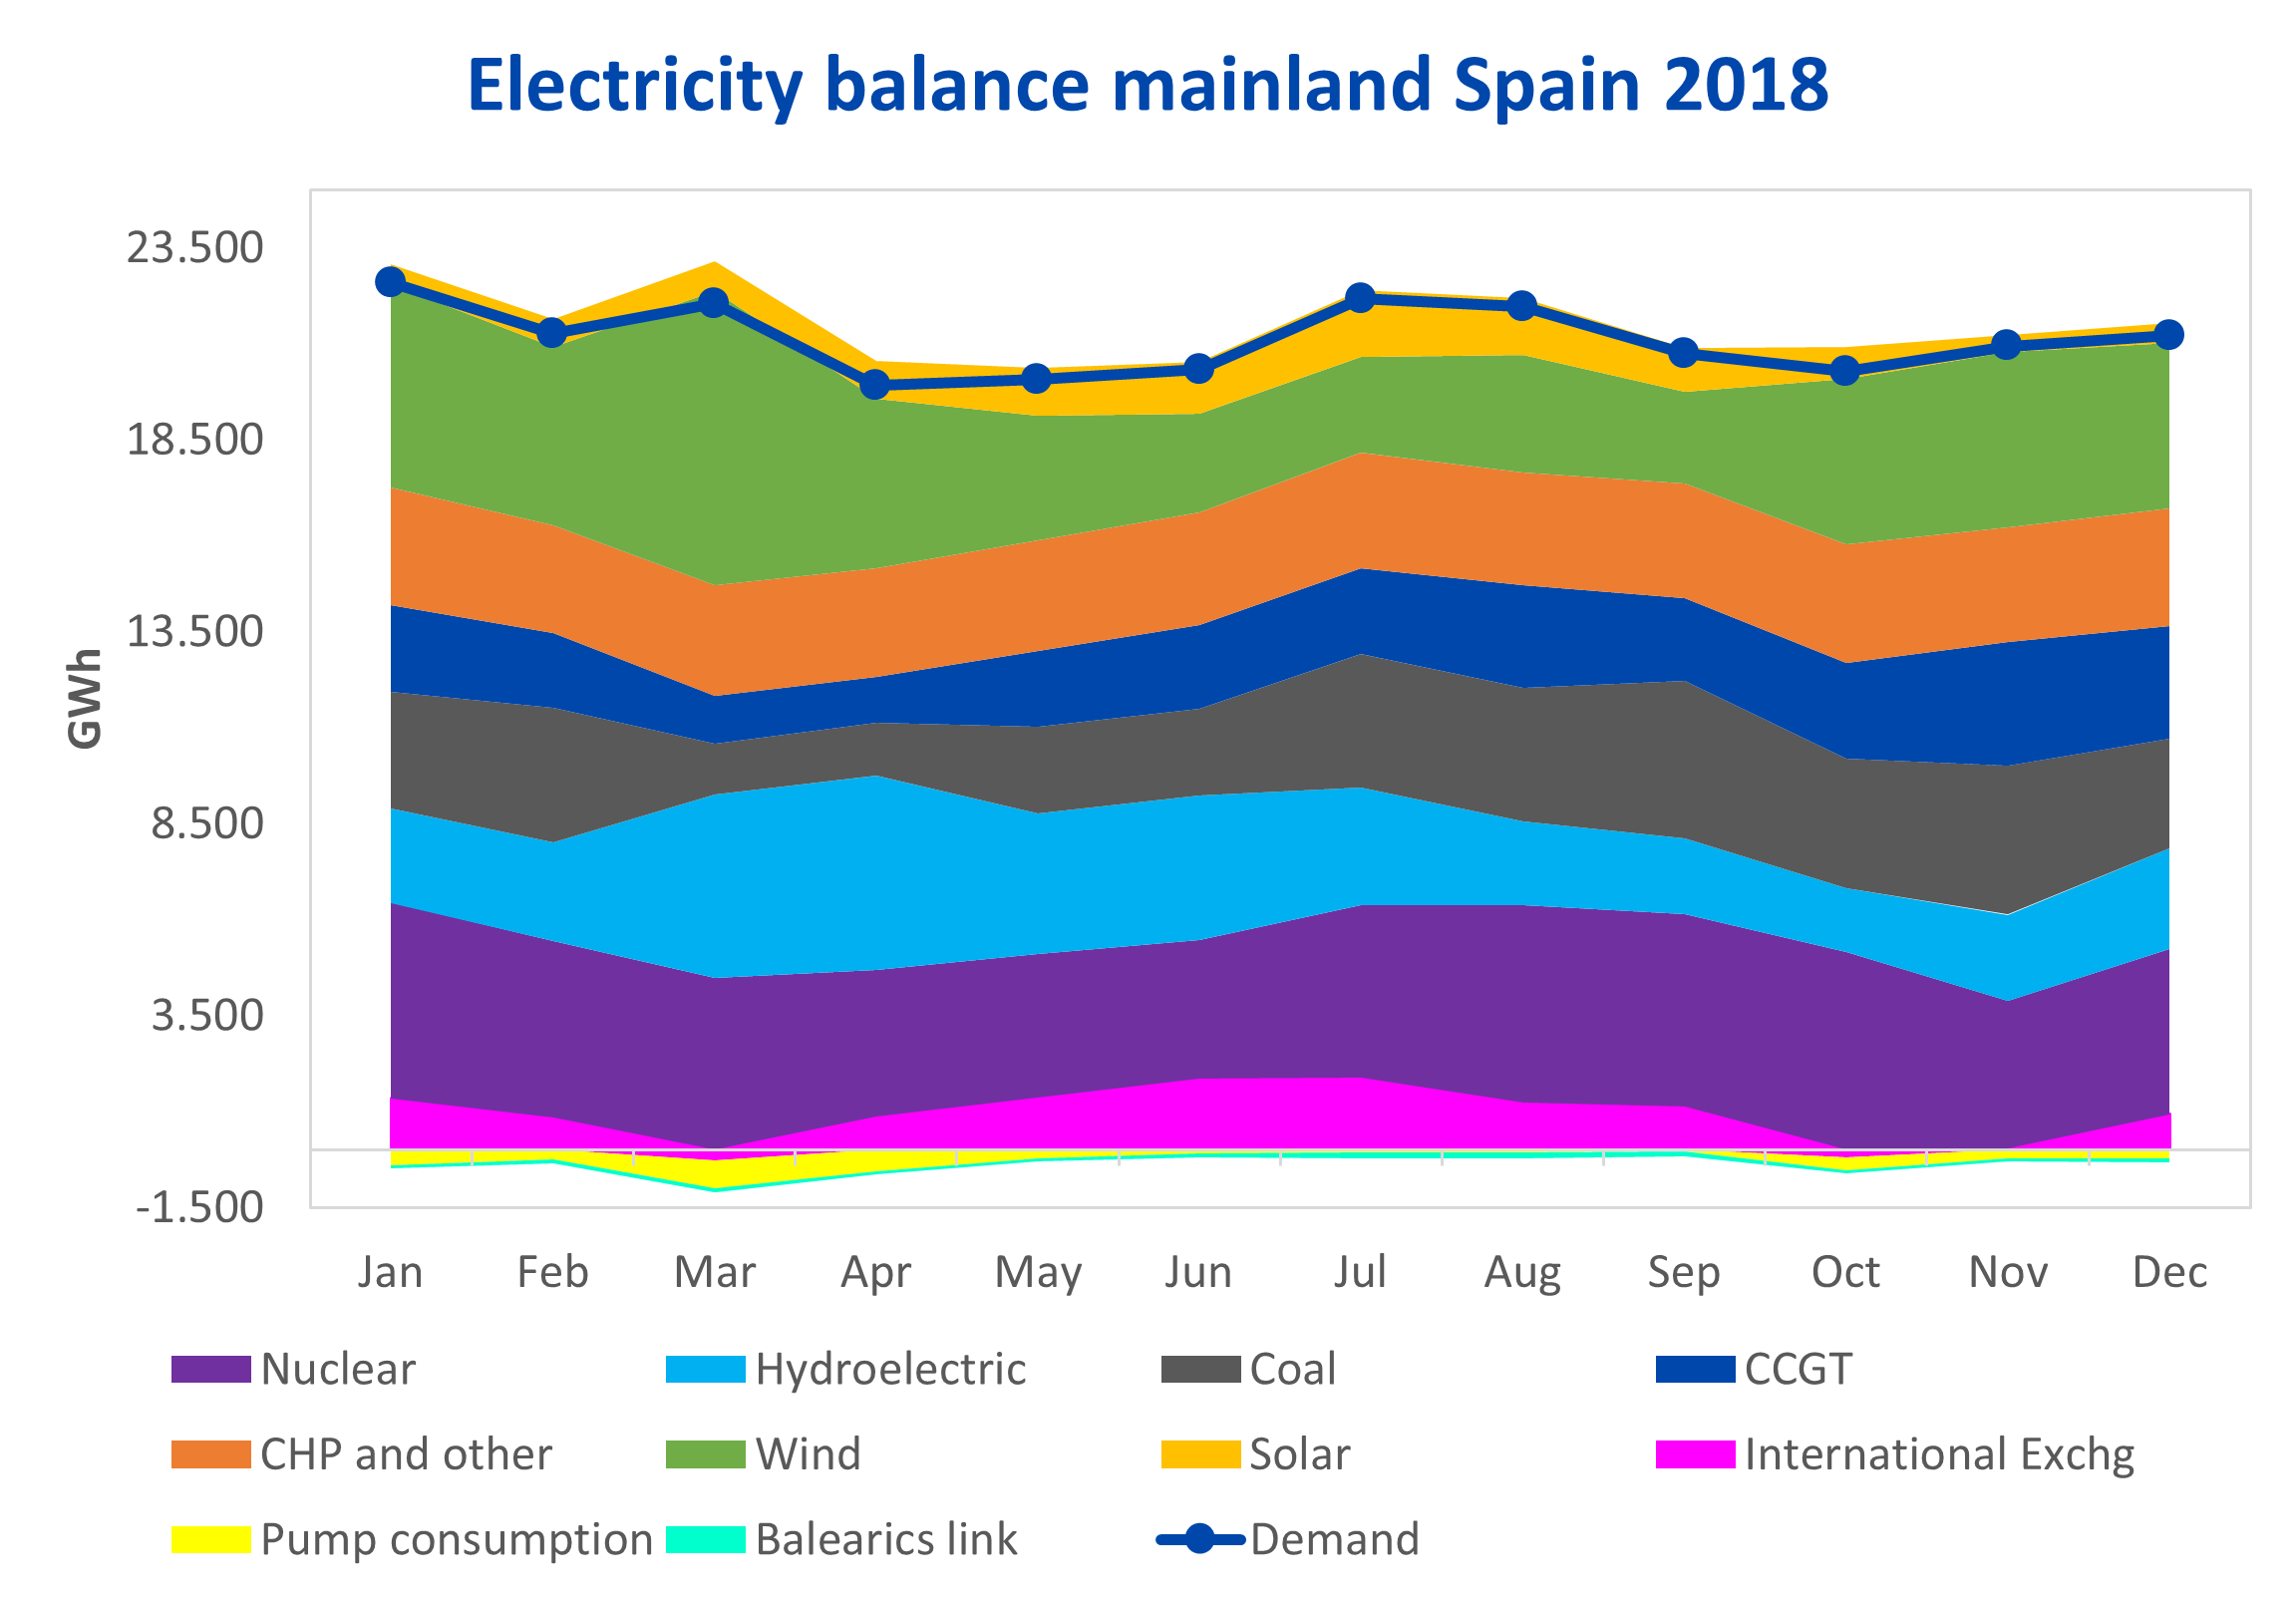 AleaSoft - Monthly electricity balance mainland Spain